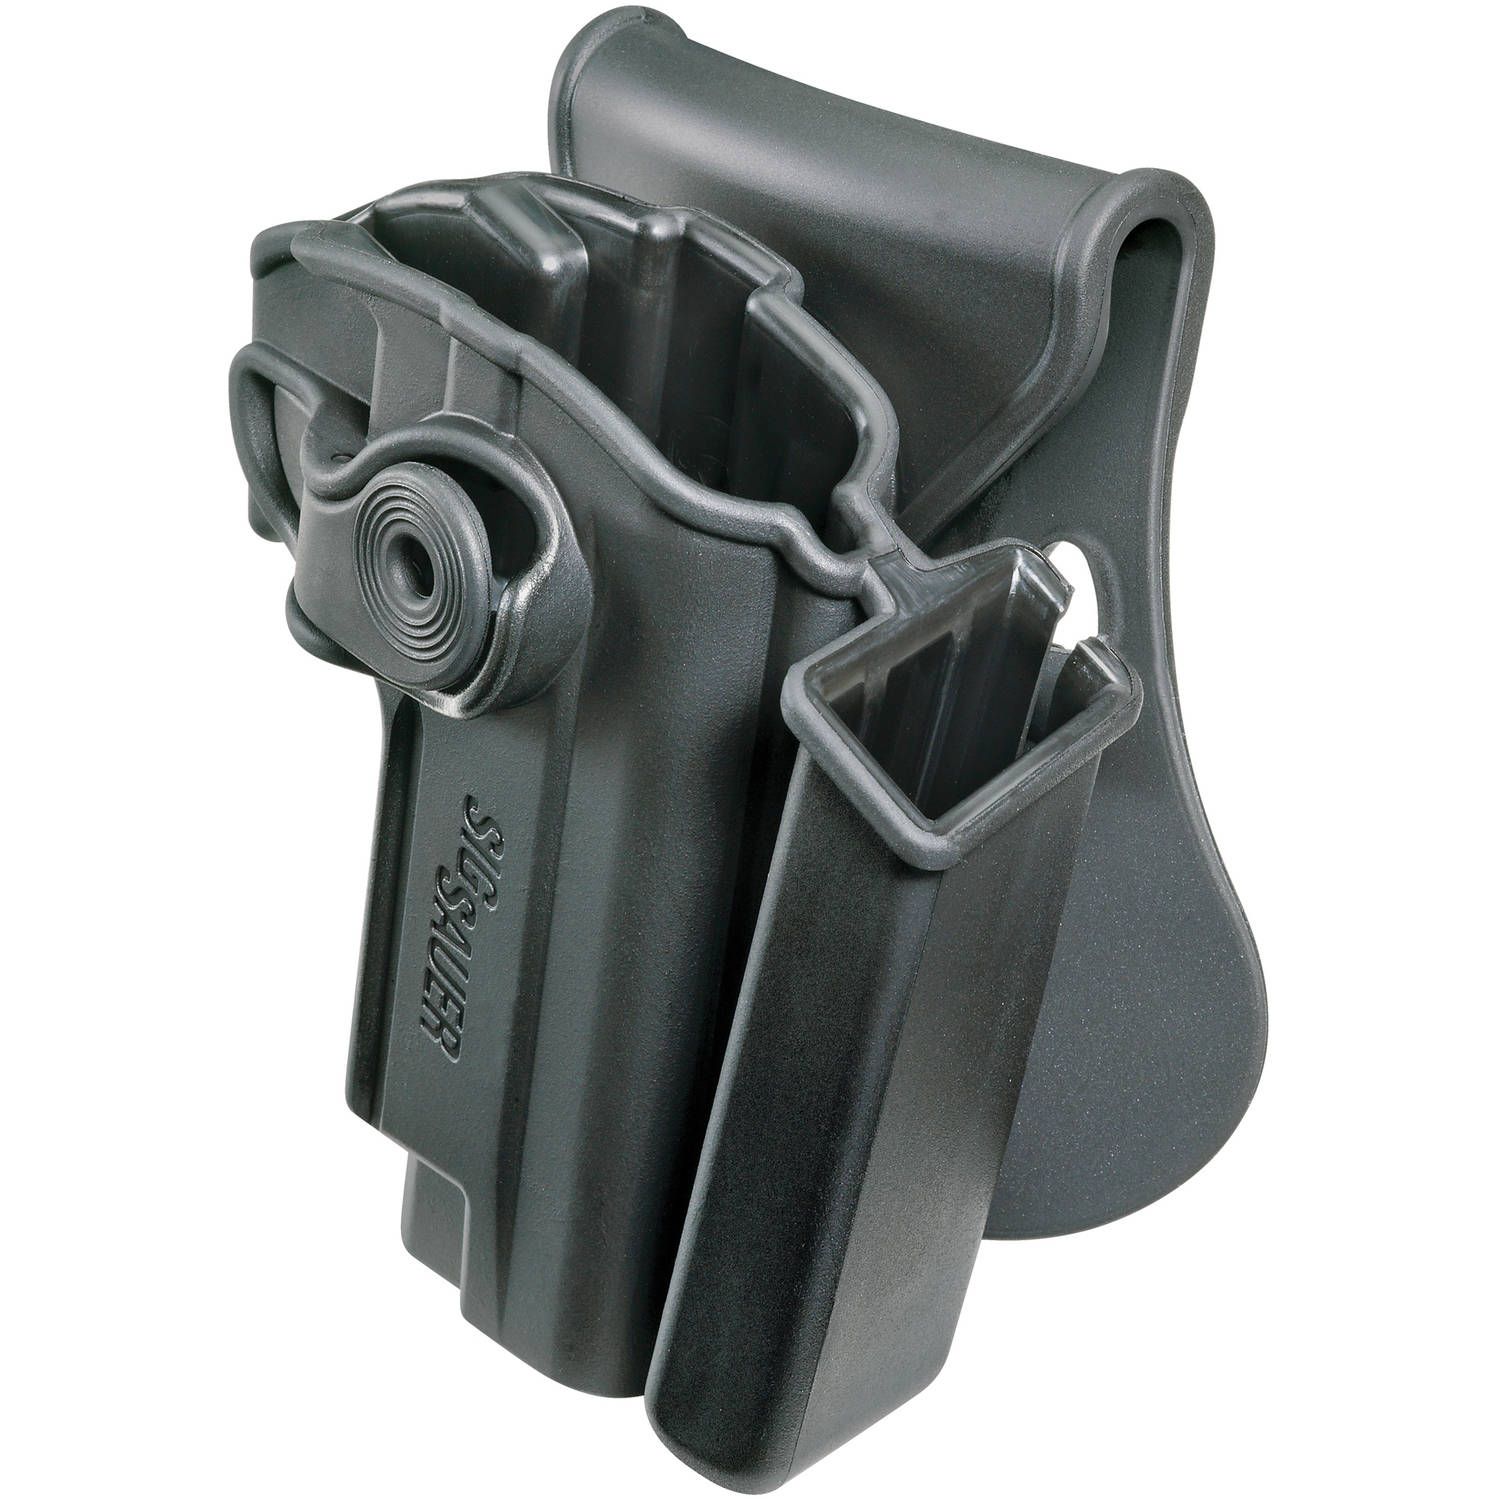 Sig Sauer Paddle Holster, Fits Mosquito, Right Hand, Black